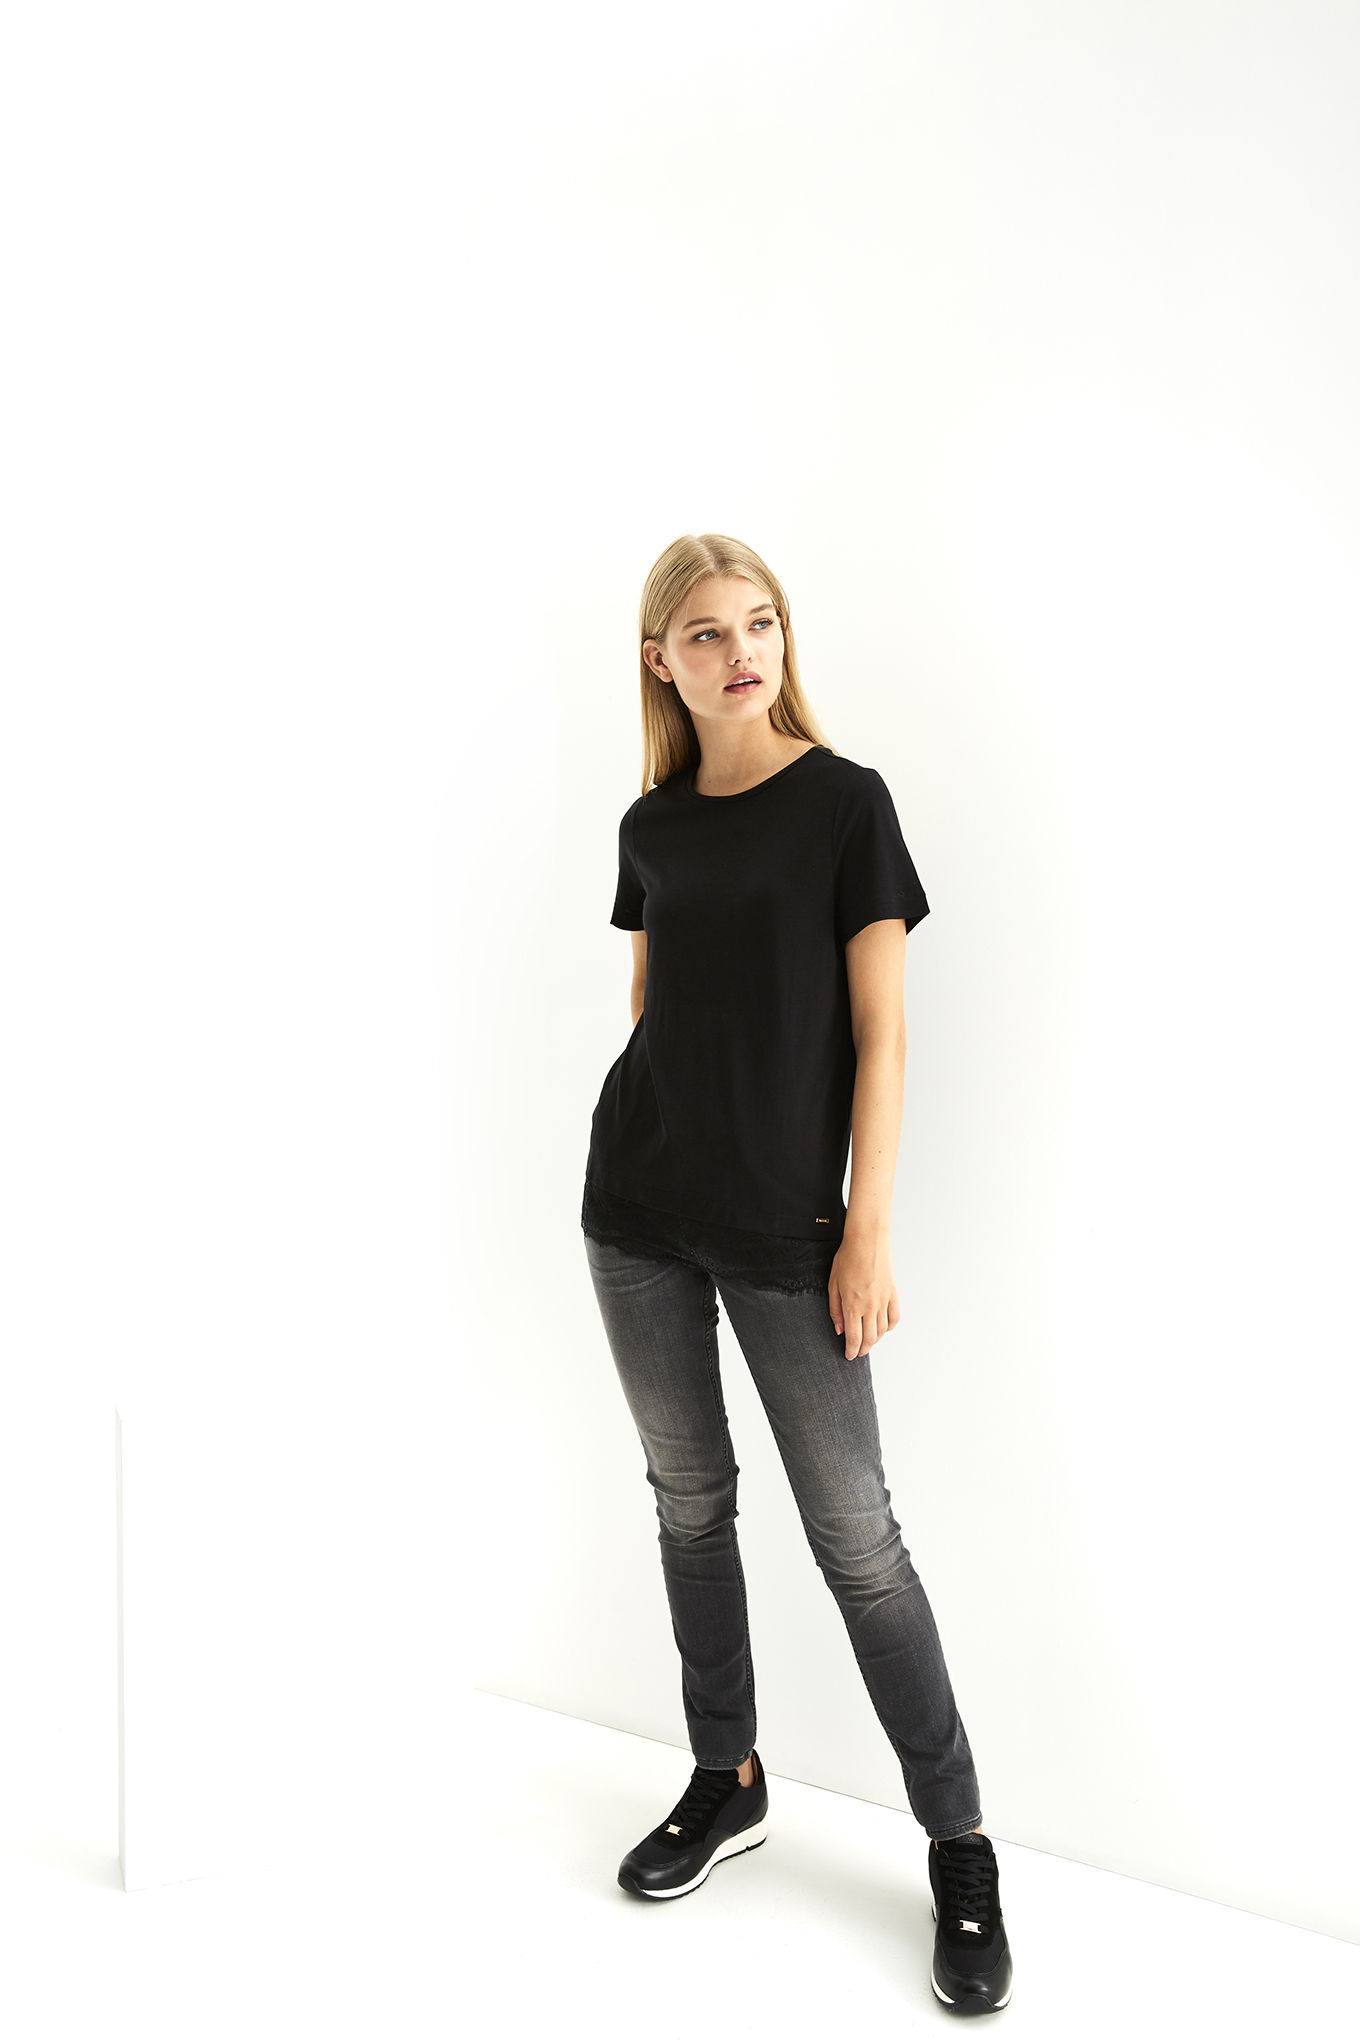 T-Shirt Preto Casual Mulher